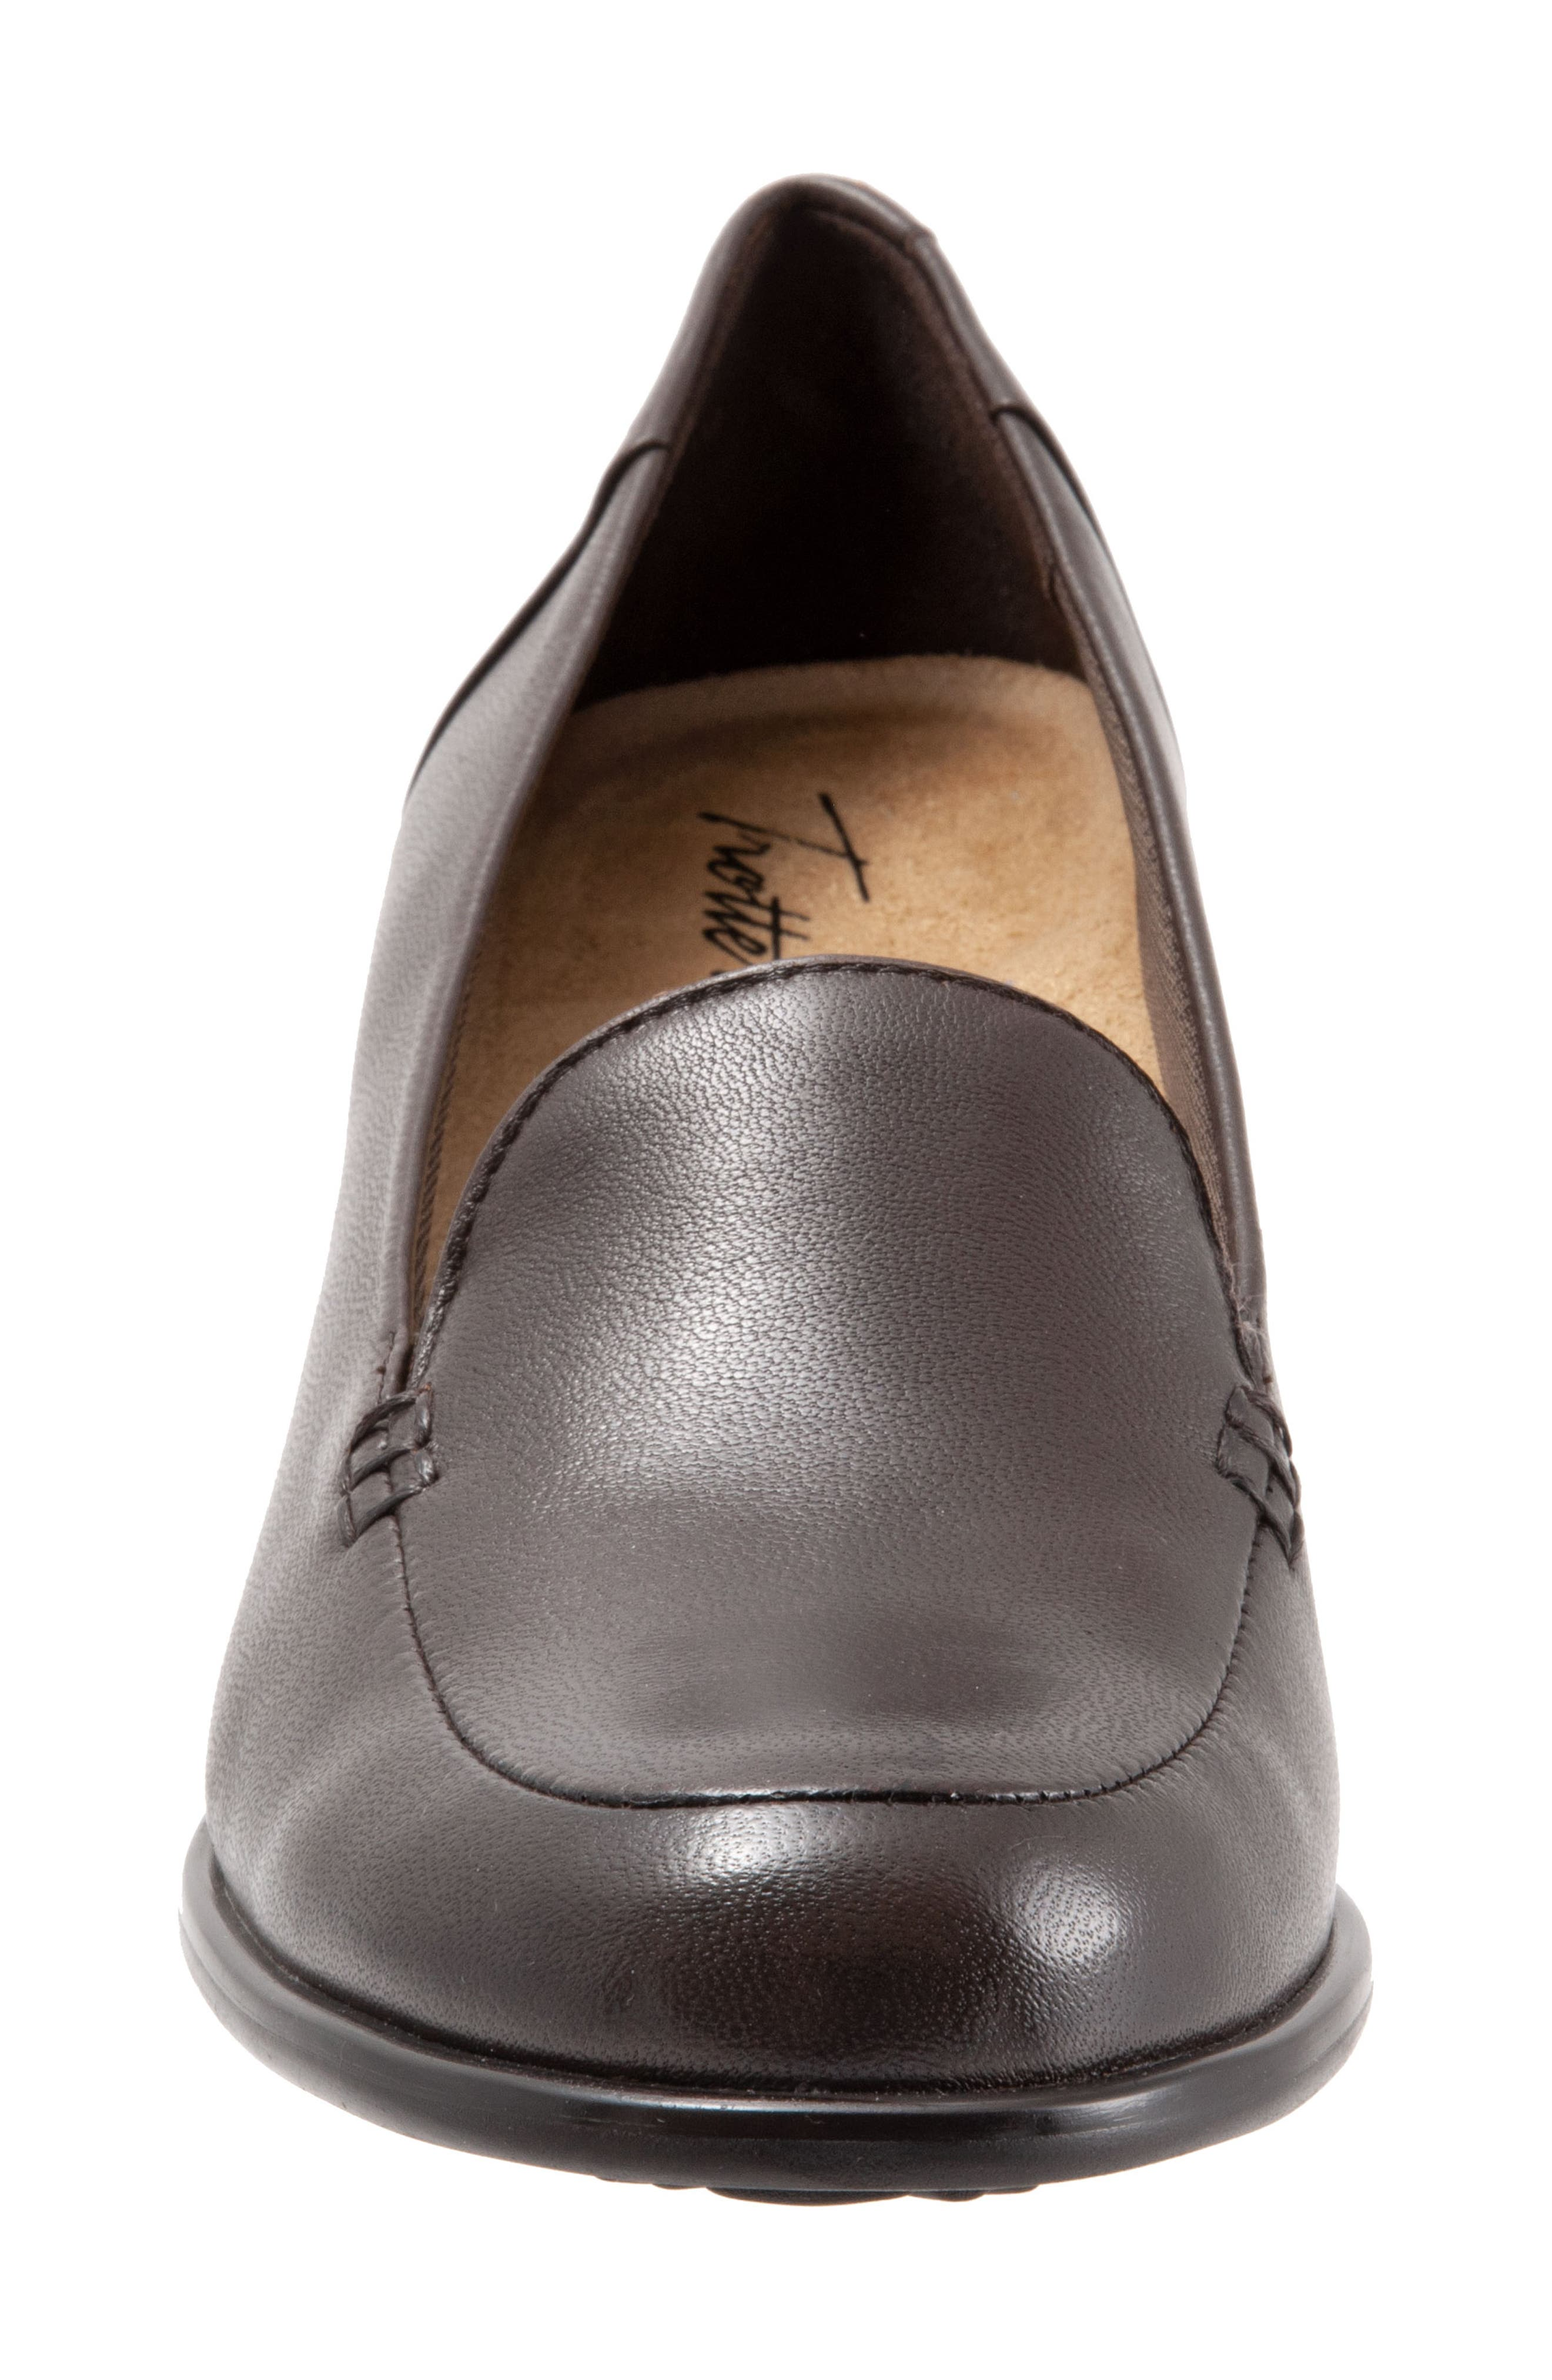 Quincy Loafer Pump,                             Alternate thumbnail 4, color,                             DARK BROWN LEATHER